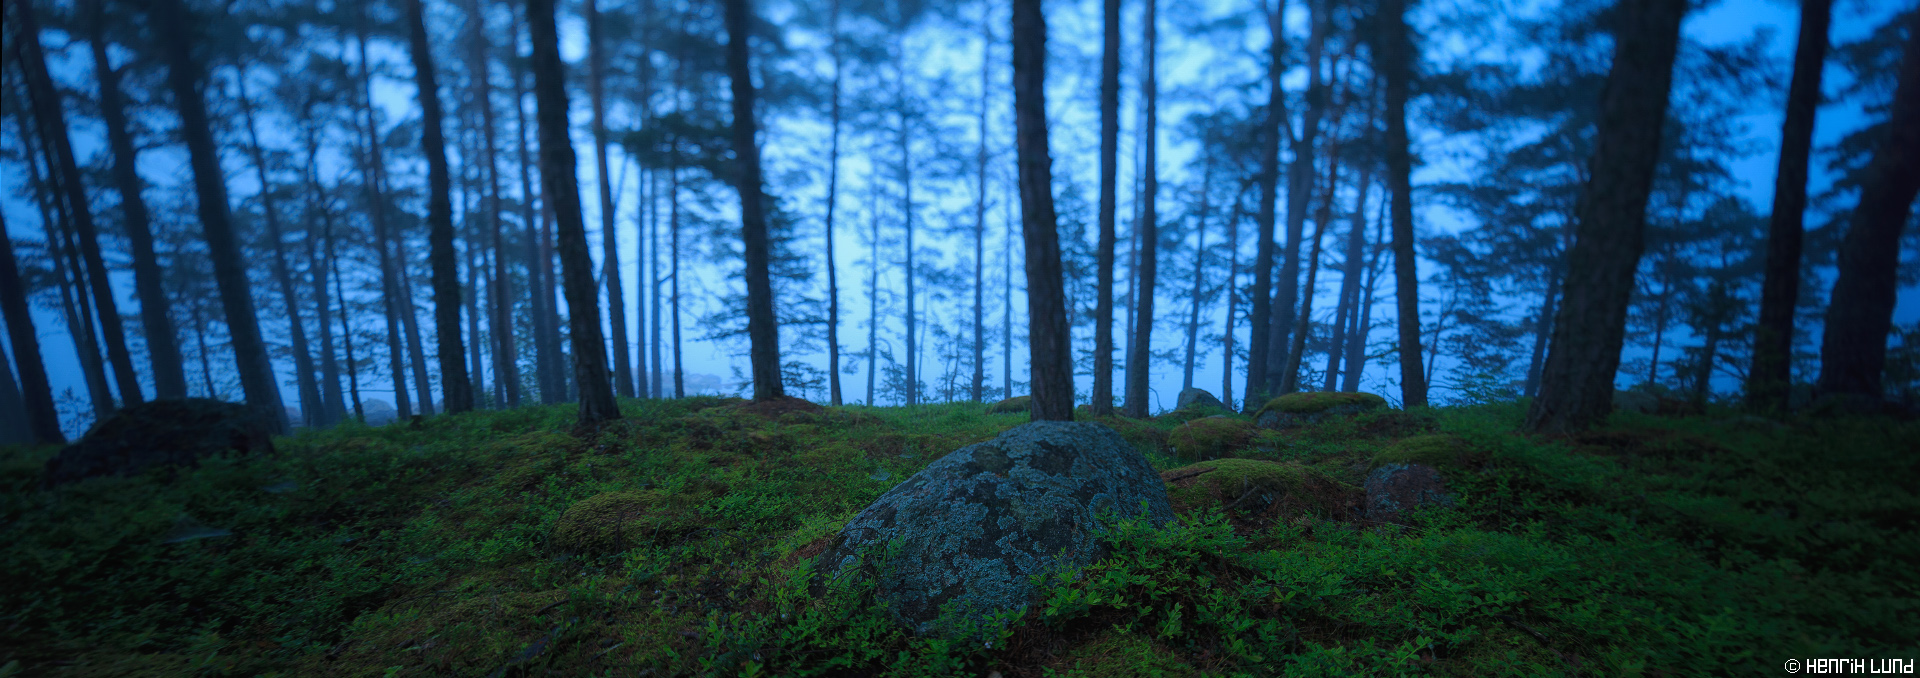 Misty midsummer night panorama taken with TS-E -technique. Bodö, Porvoo archipelago, Finland, June 2015.